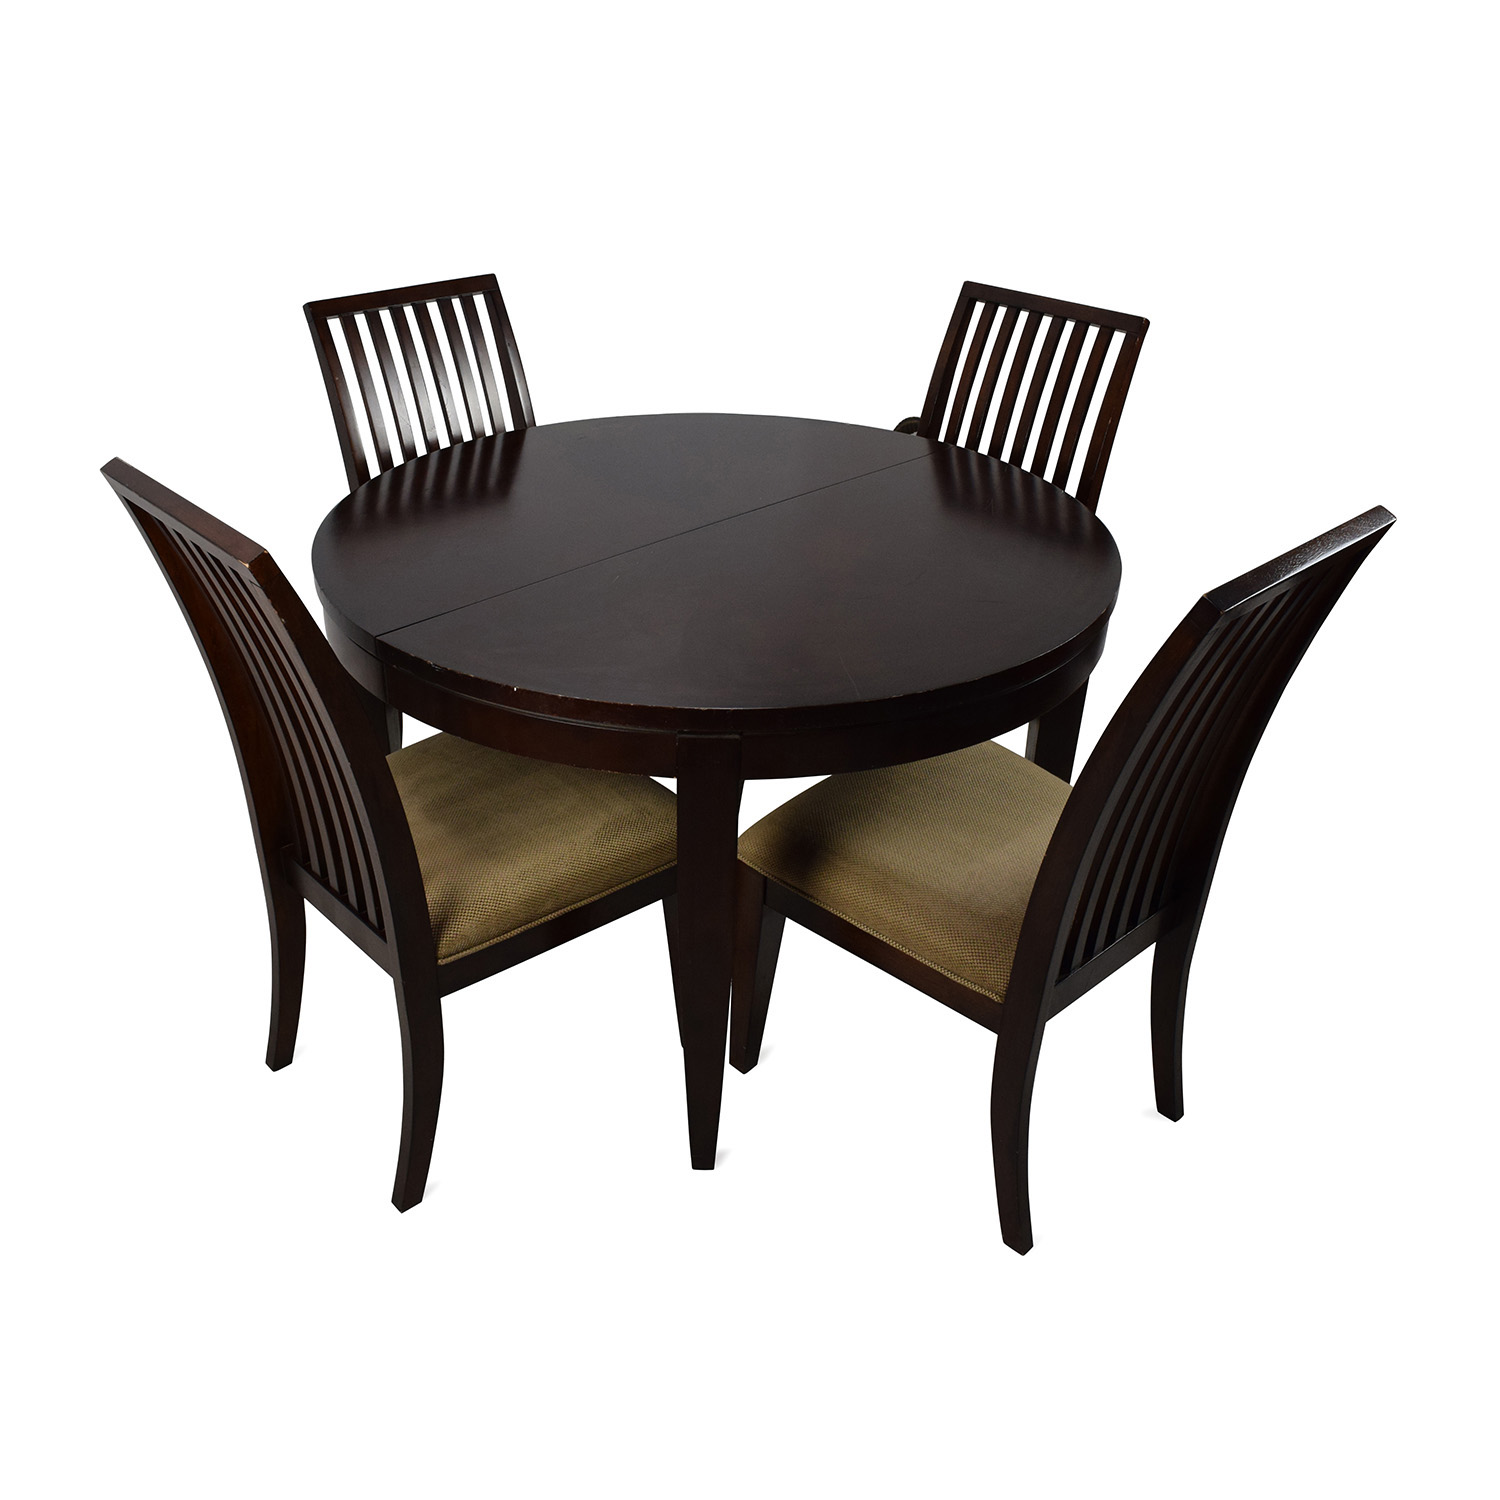 buy Macys Macys Bradford Extendable Dining Table with 4 Chairs online